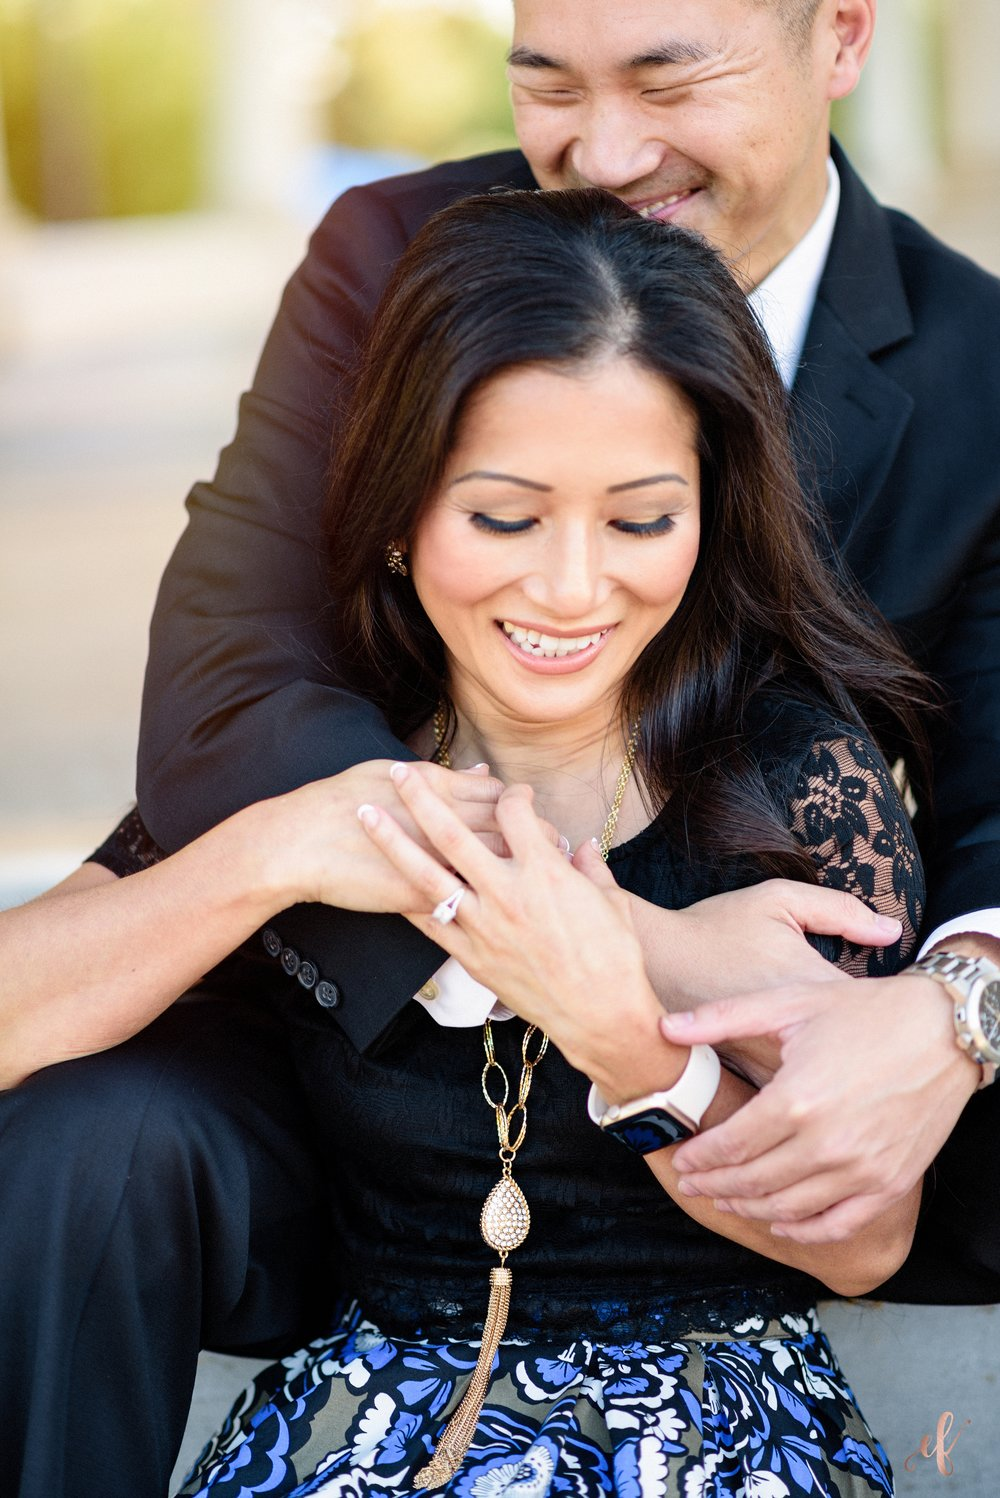 Balboa Park Engagement Photography | San Diego Portrait Photography